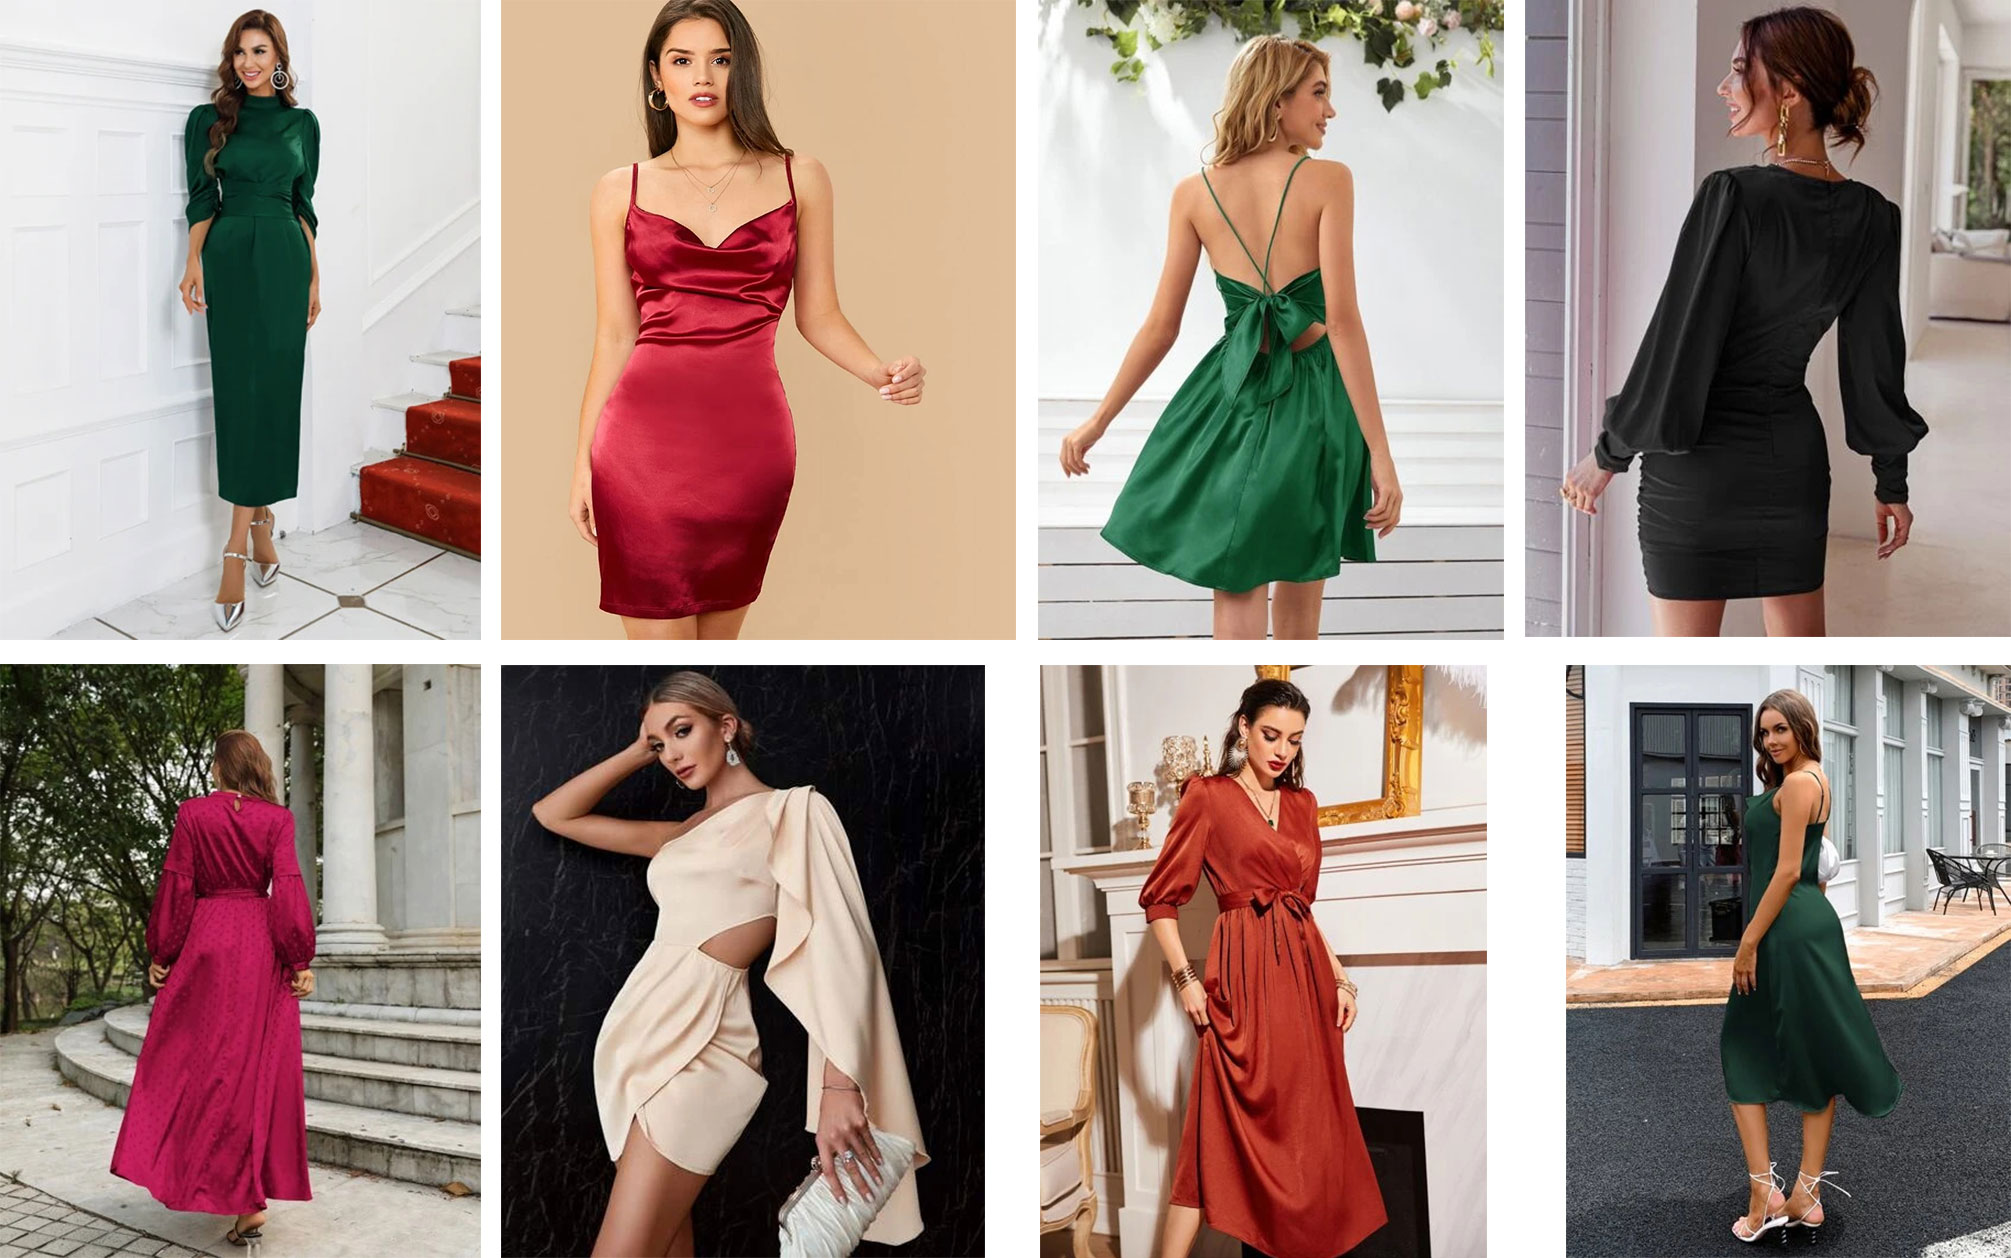 Satin Dresses From Shein's Are Marvelously Lovely